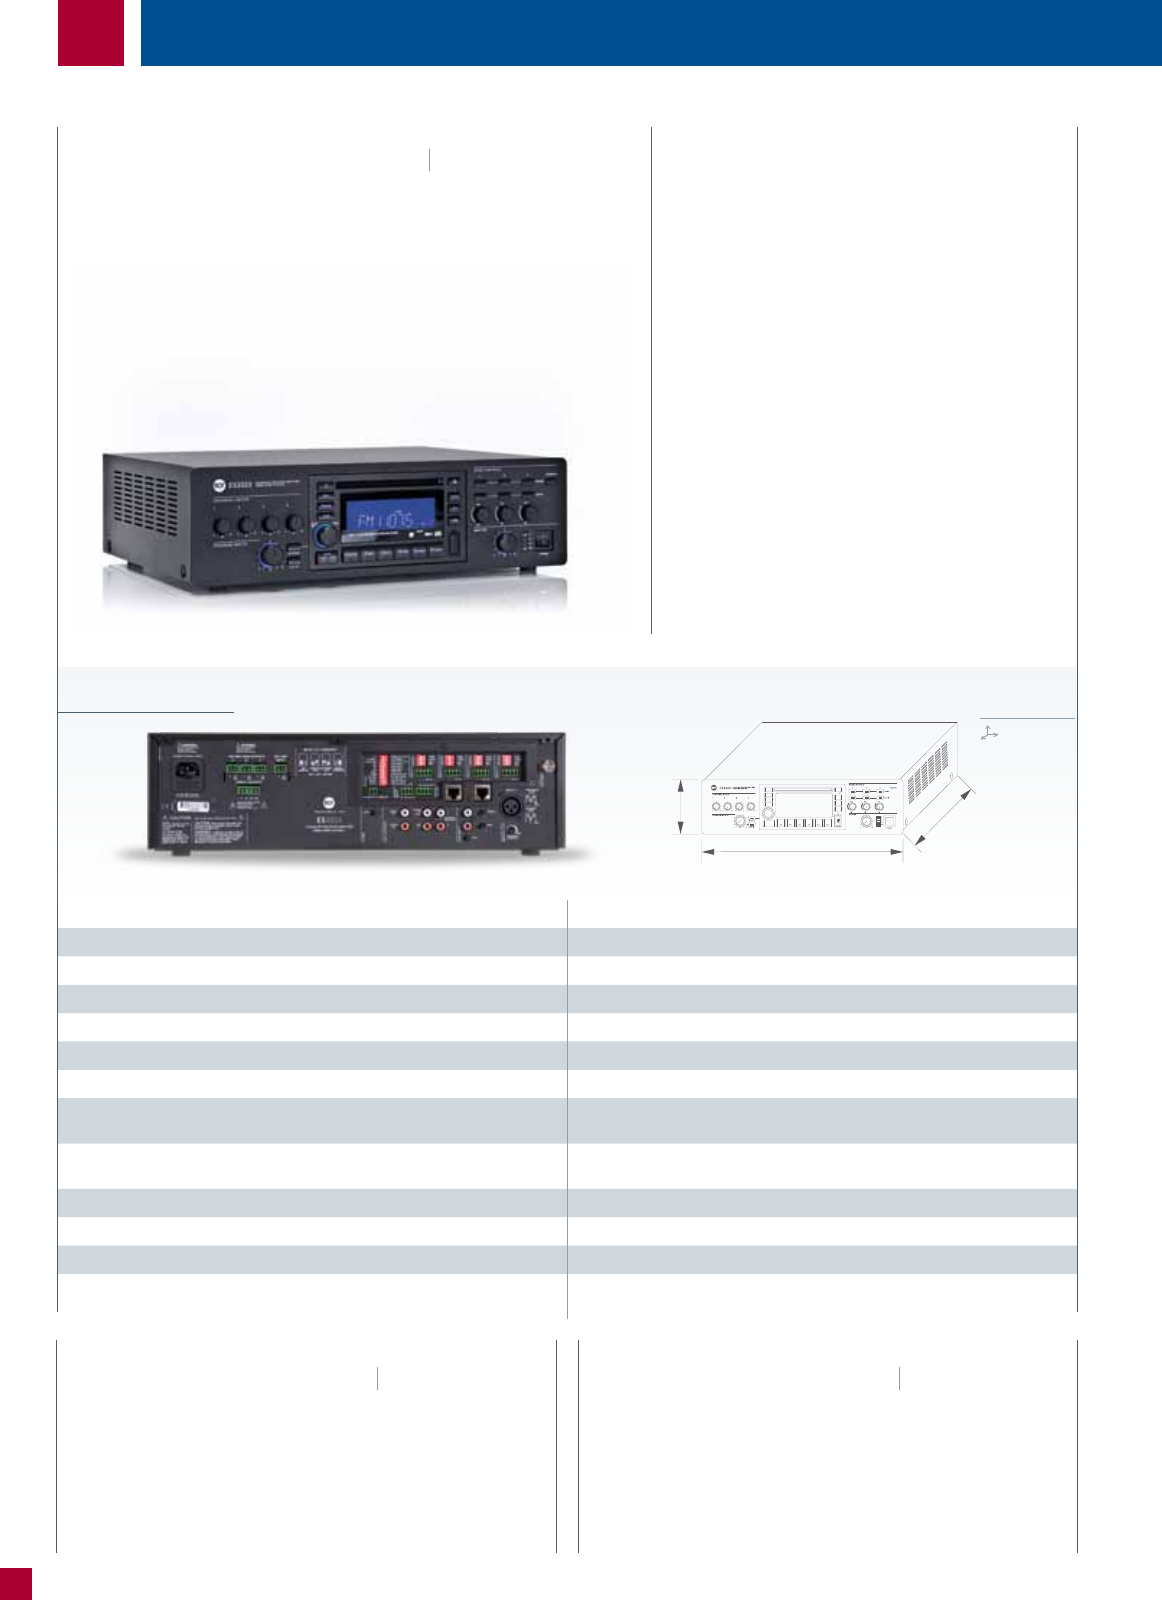 2010 Commercial Audio Catalogue Stk Ic 60w Specifications Es 3323